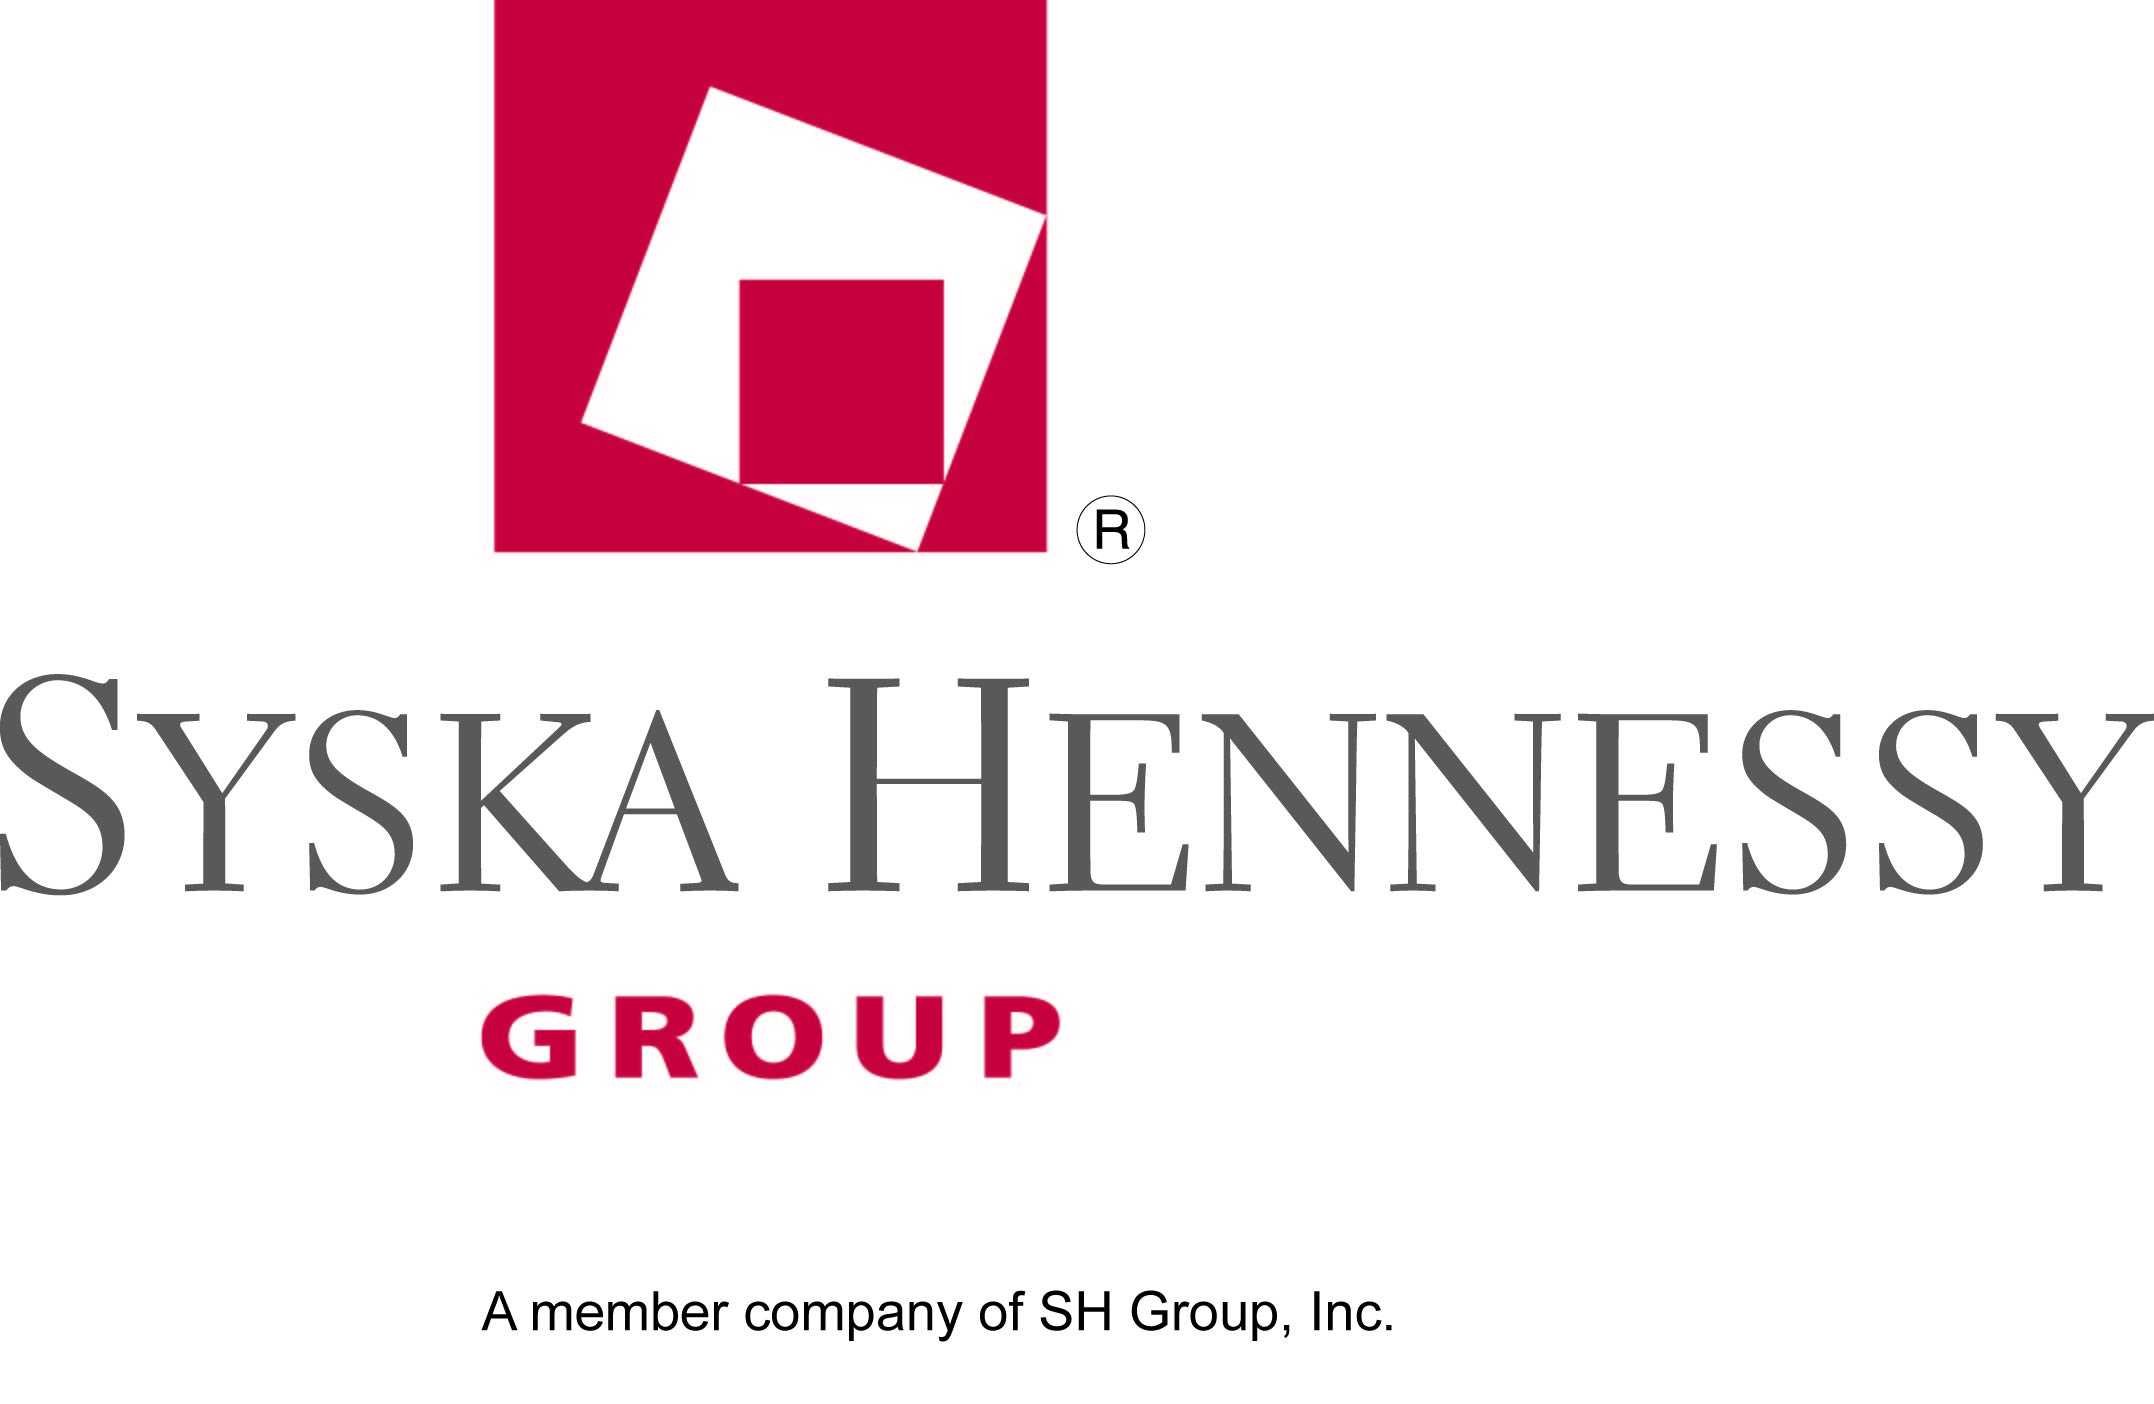 Design Awards: Syska Hennessy Group logo